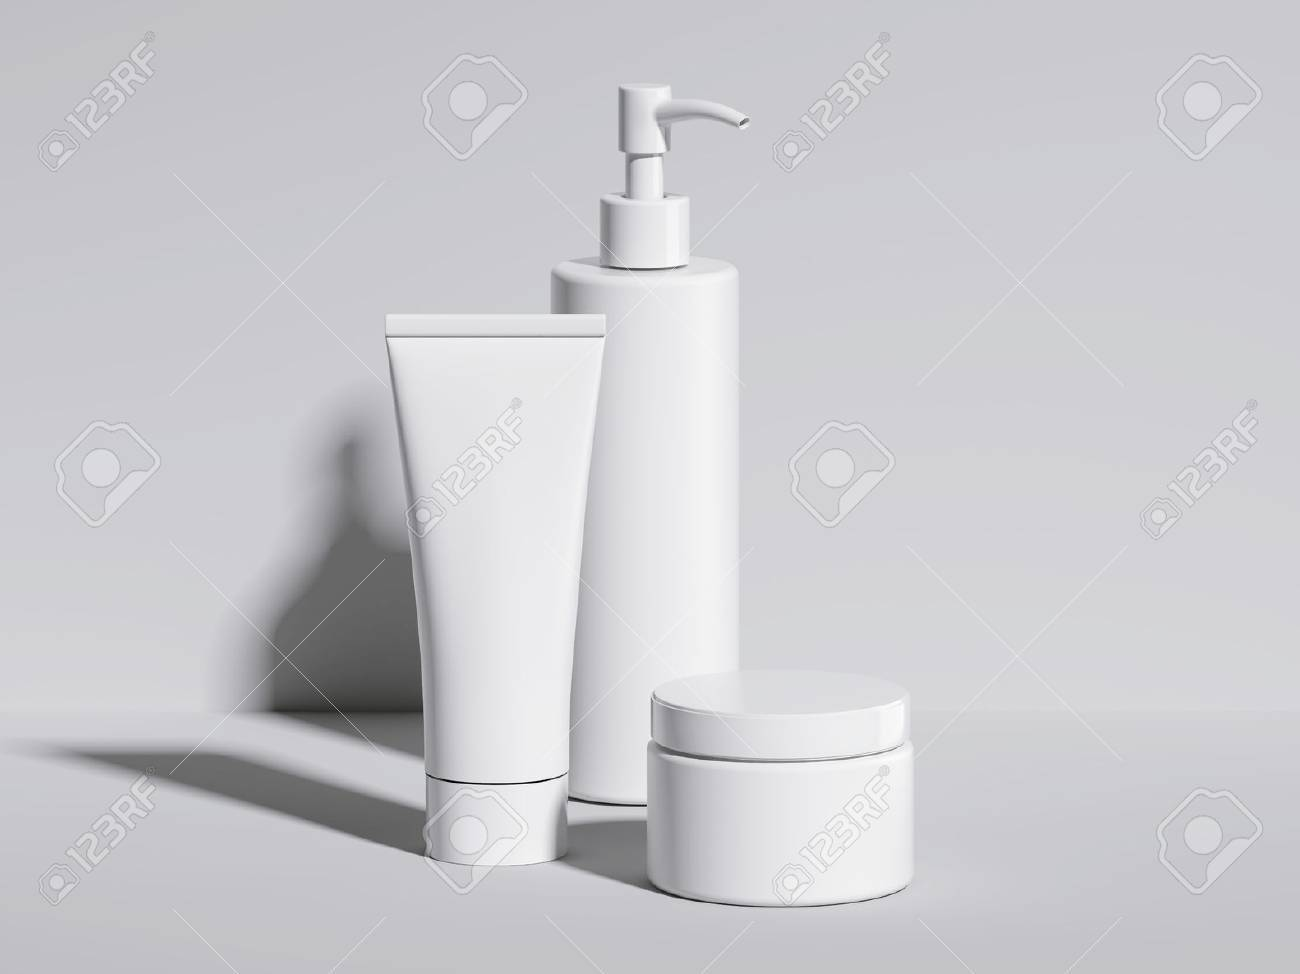 Set of beauty white hygiene containers. 3d rendering - 68917619